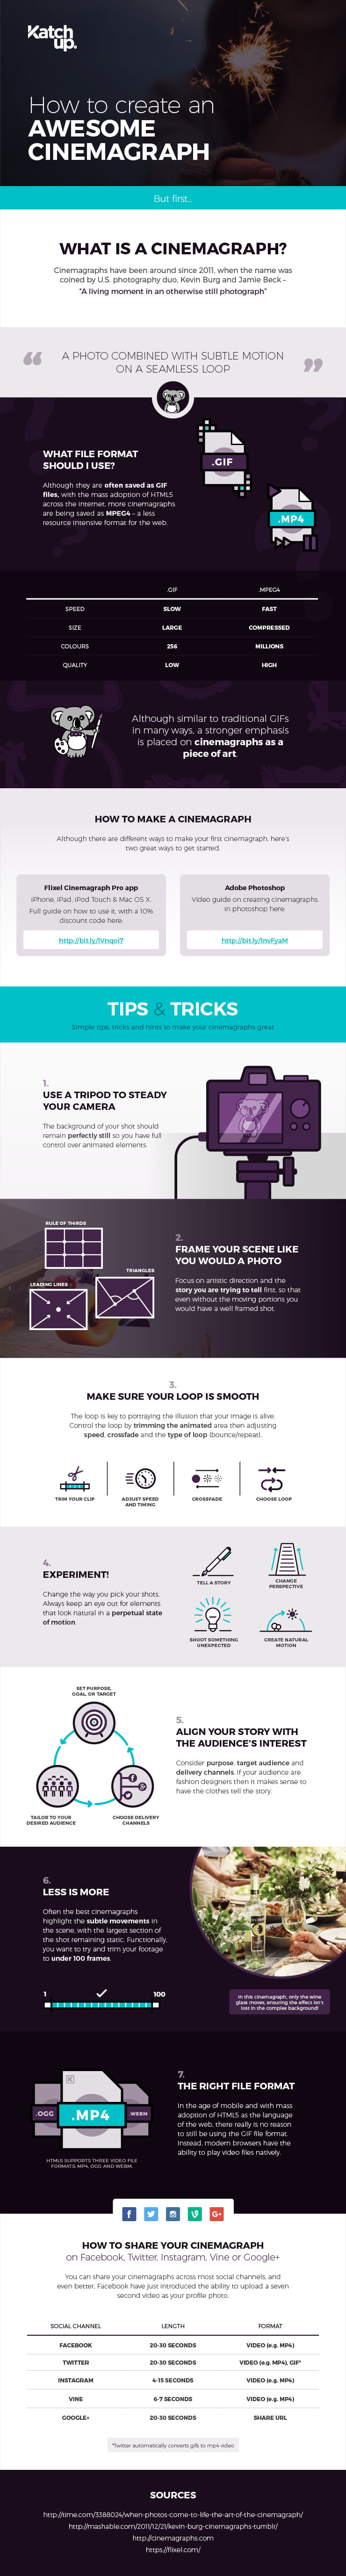 How to Make a Cinemagraph: The Complete Guide